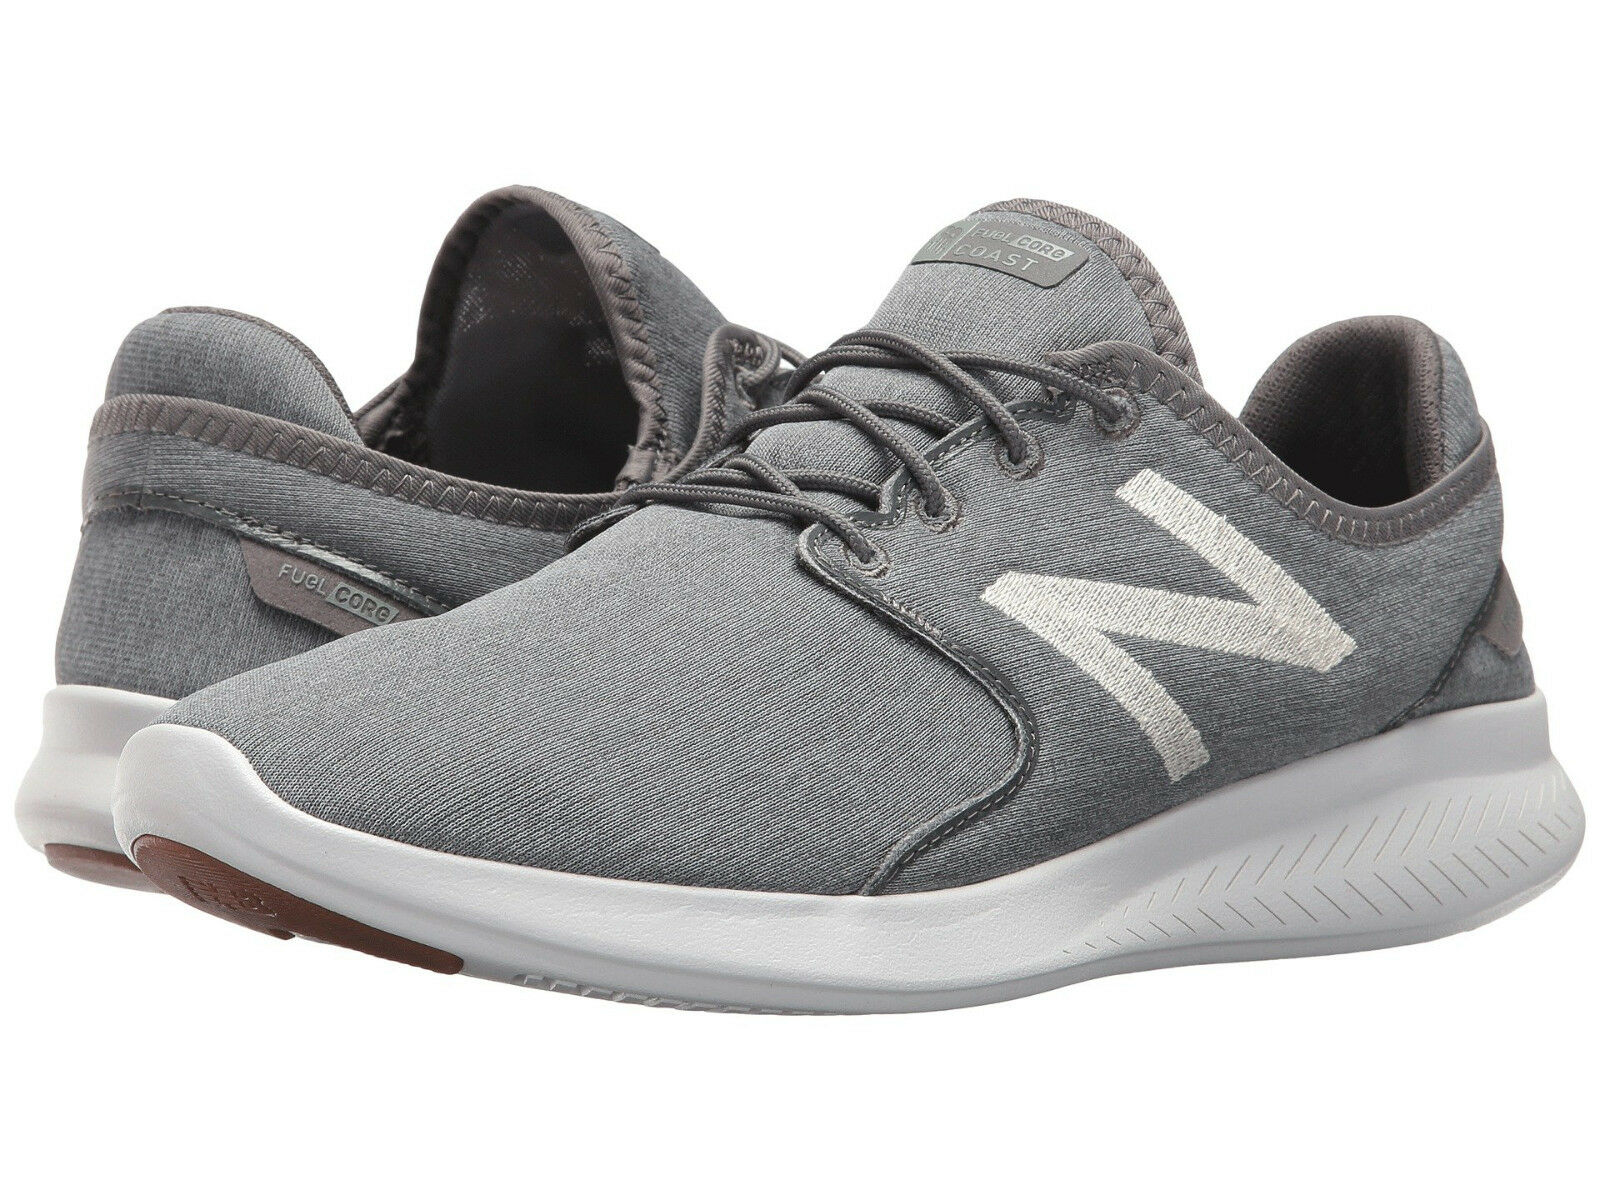 uomo New Balance Coast v3 Running Medium (D) MCOASLP3 Grey 100% Authentic New Scarpe classiche da uomo